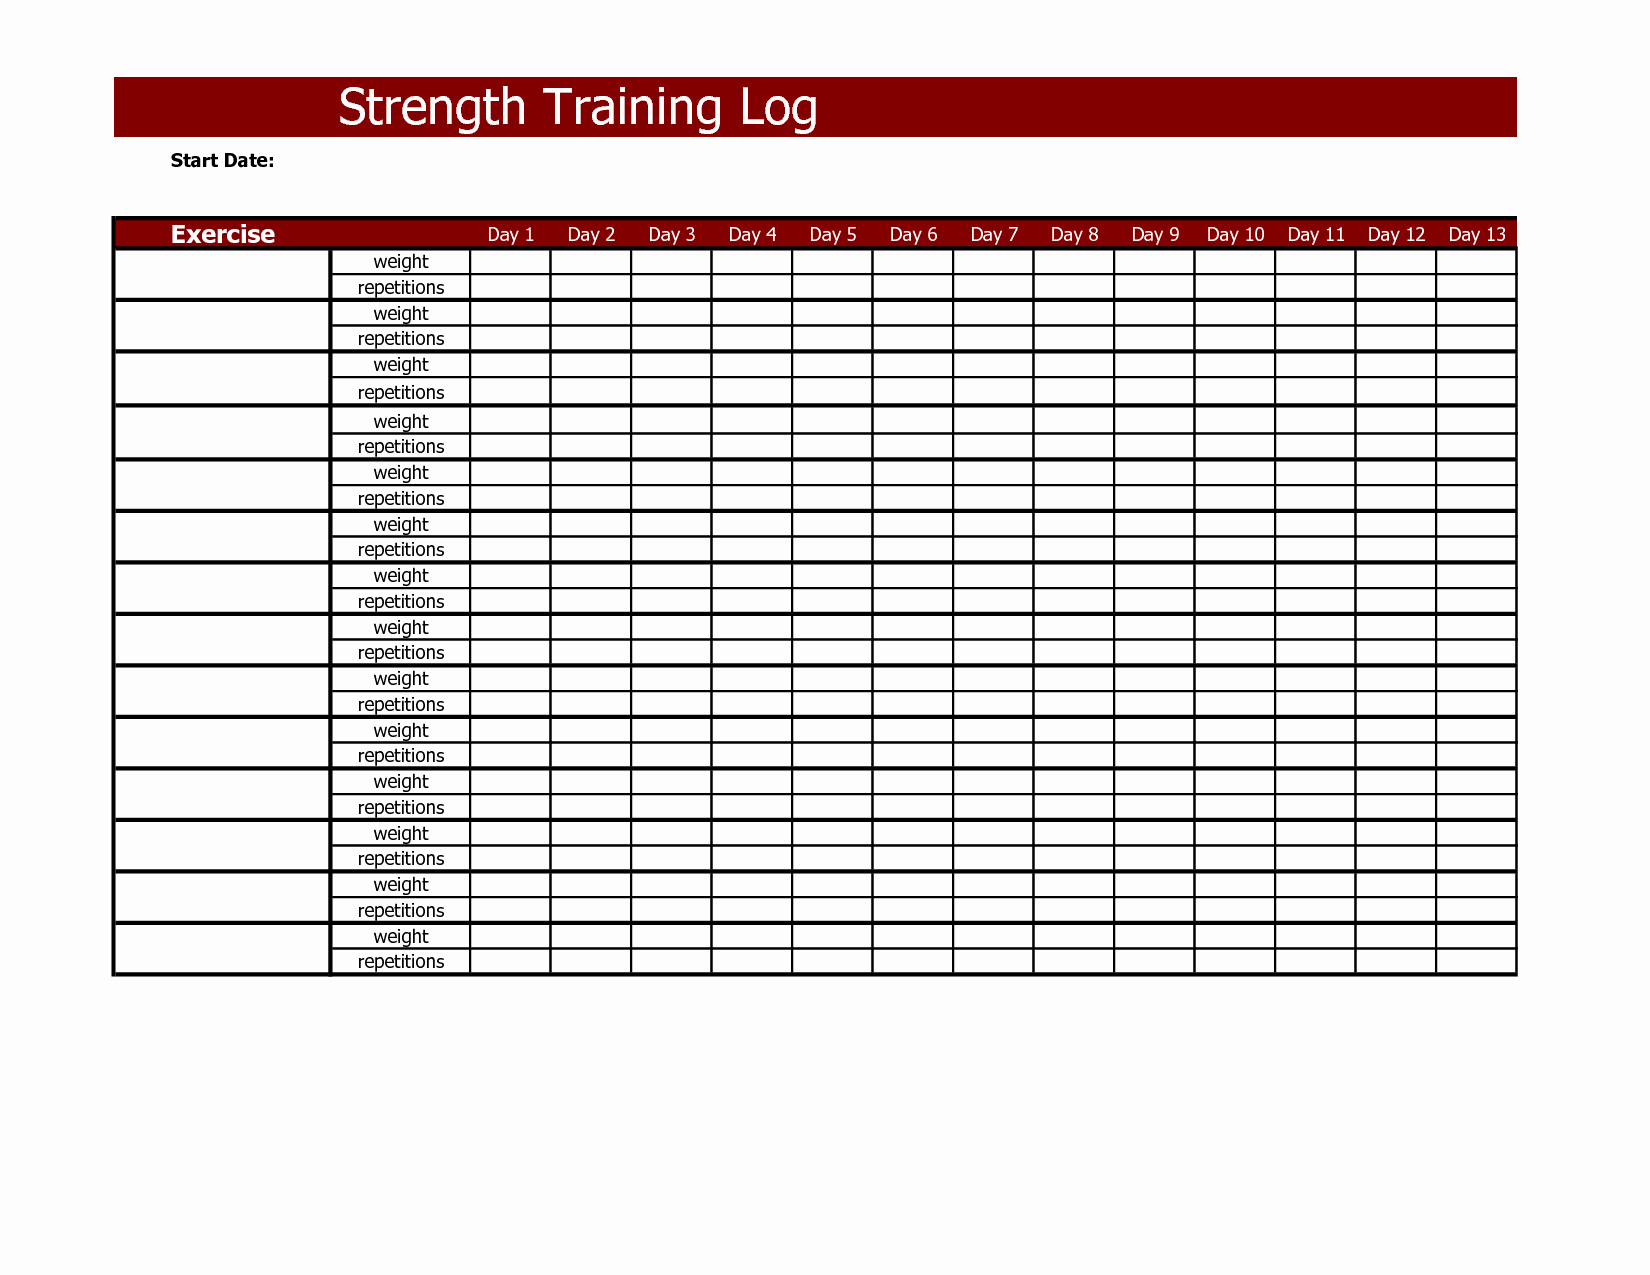 Workout Log Template Excel Best Of Strength Training Log